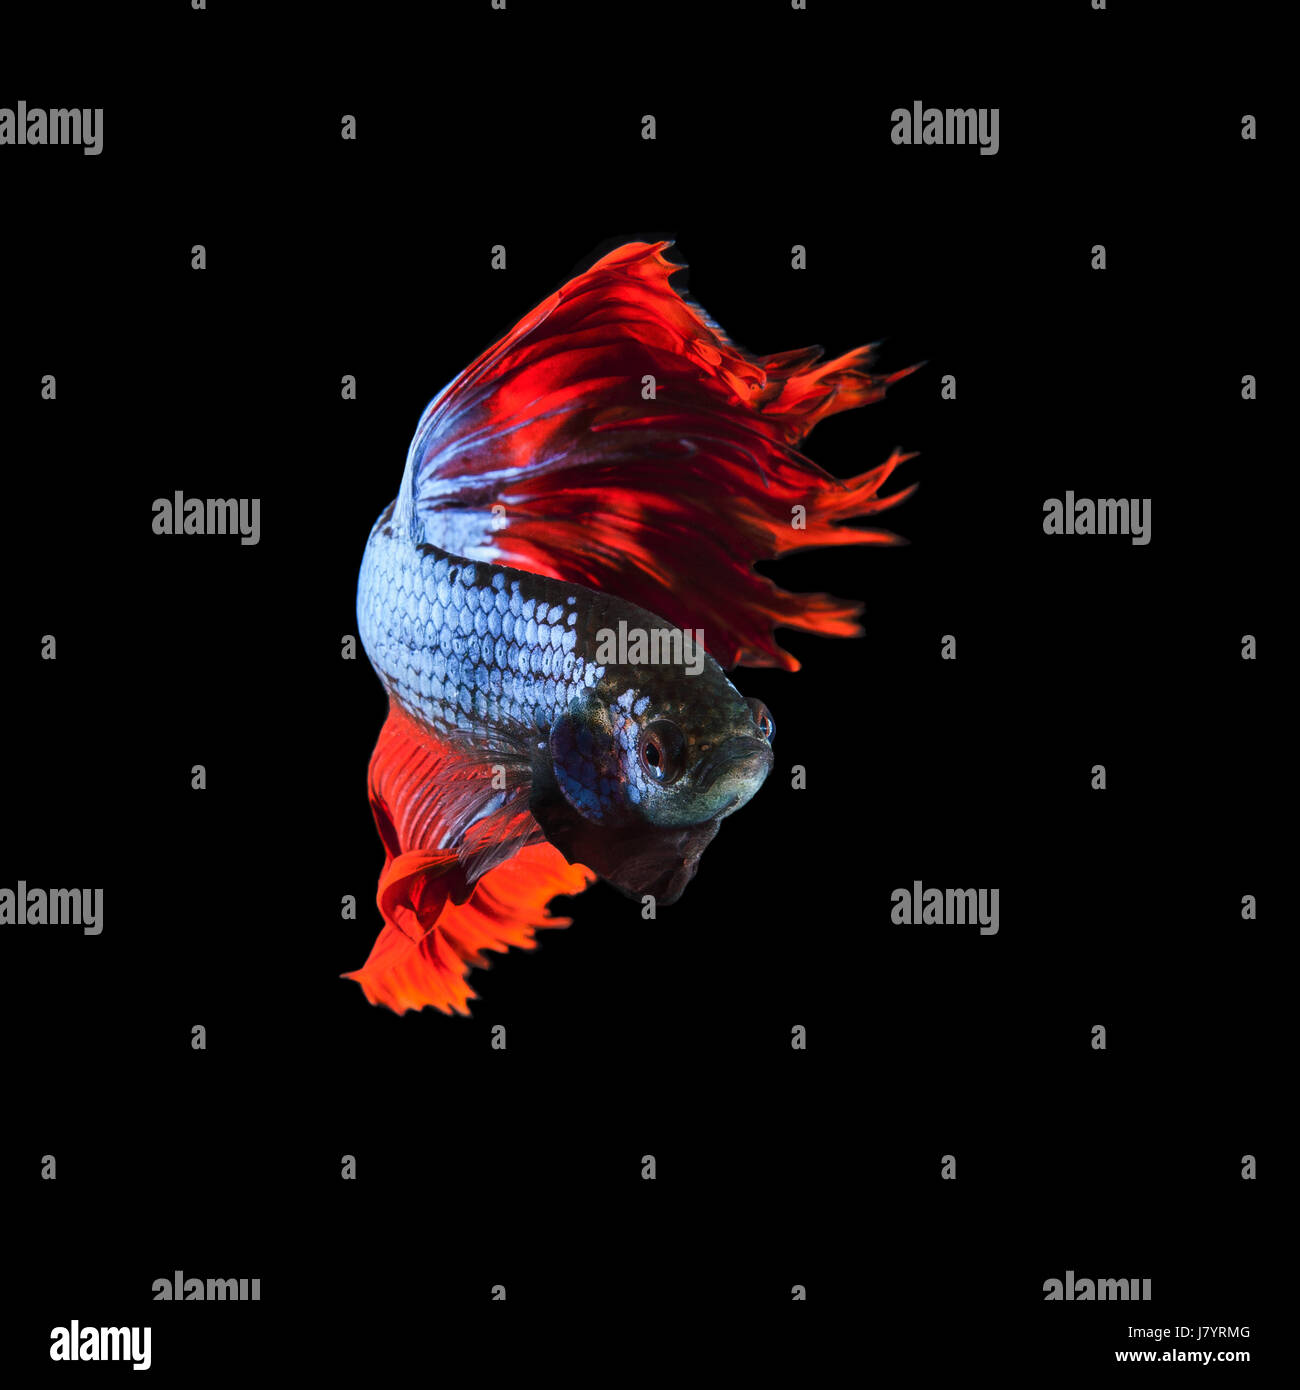 red fin siamese fighting betta fish full body and beautiful fin tail isolated on black background Stock Photo